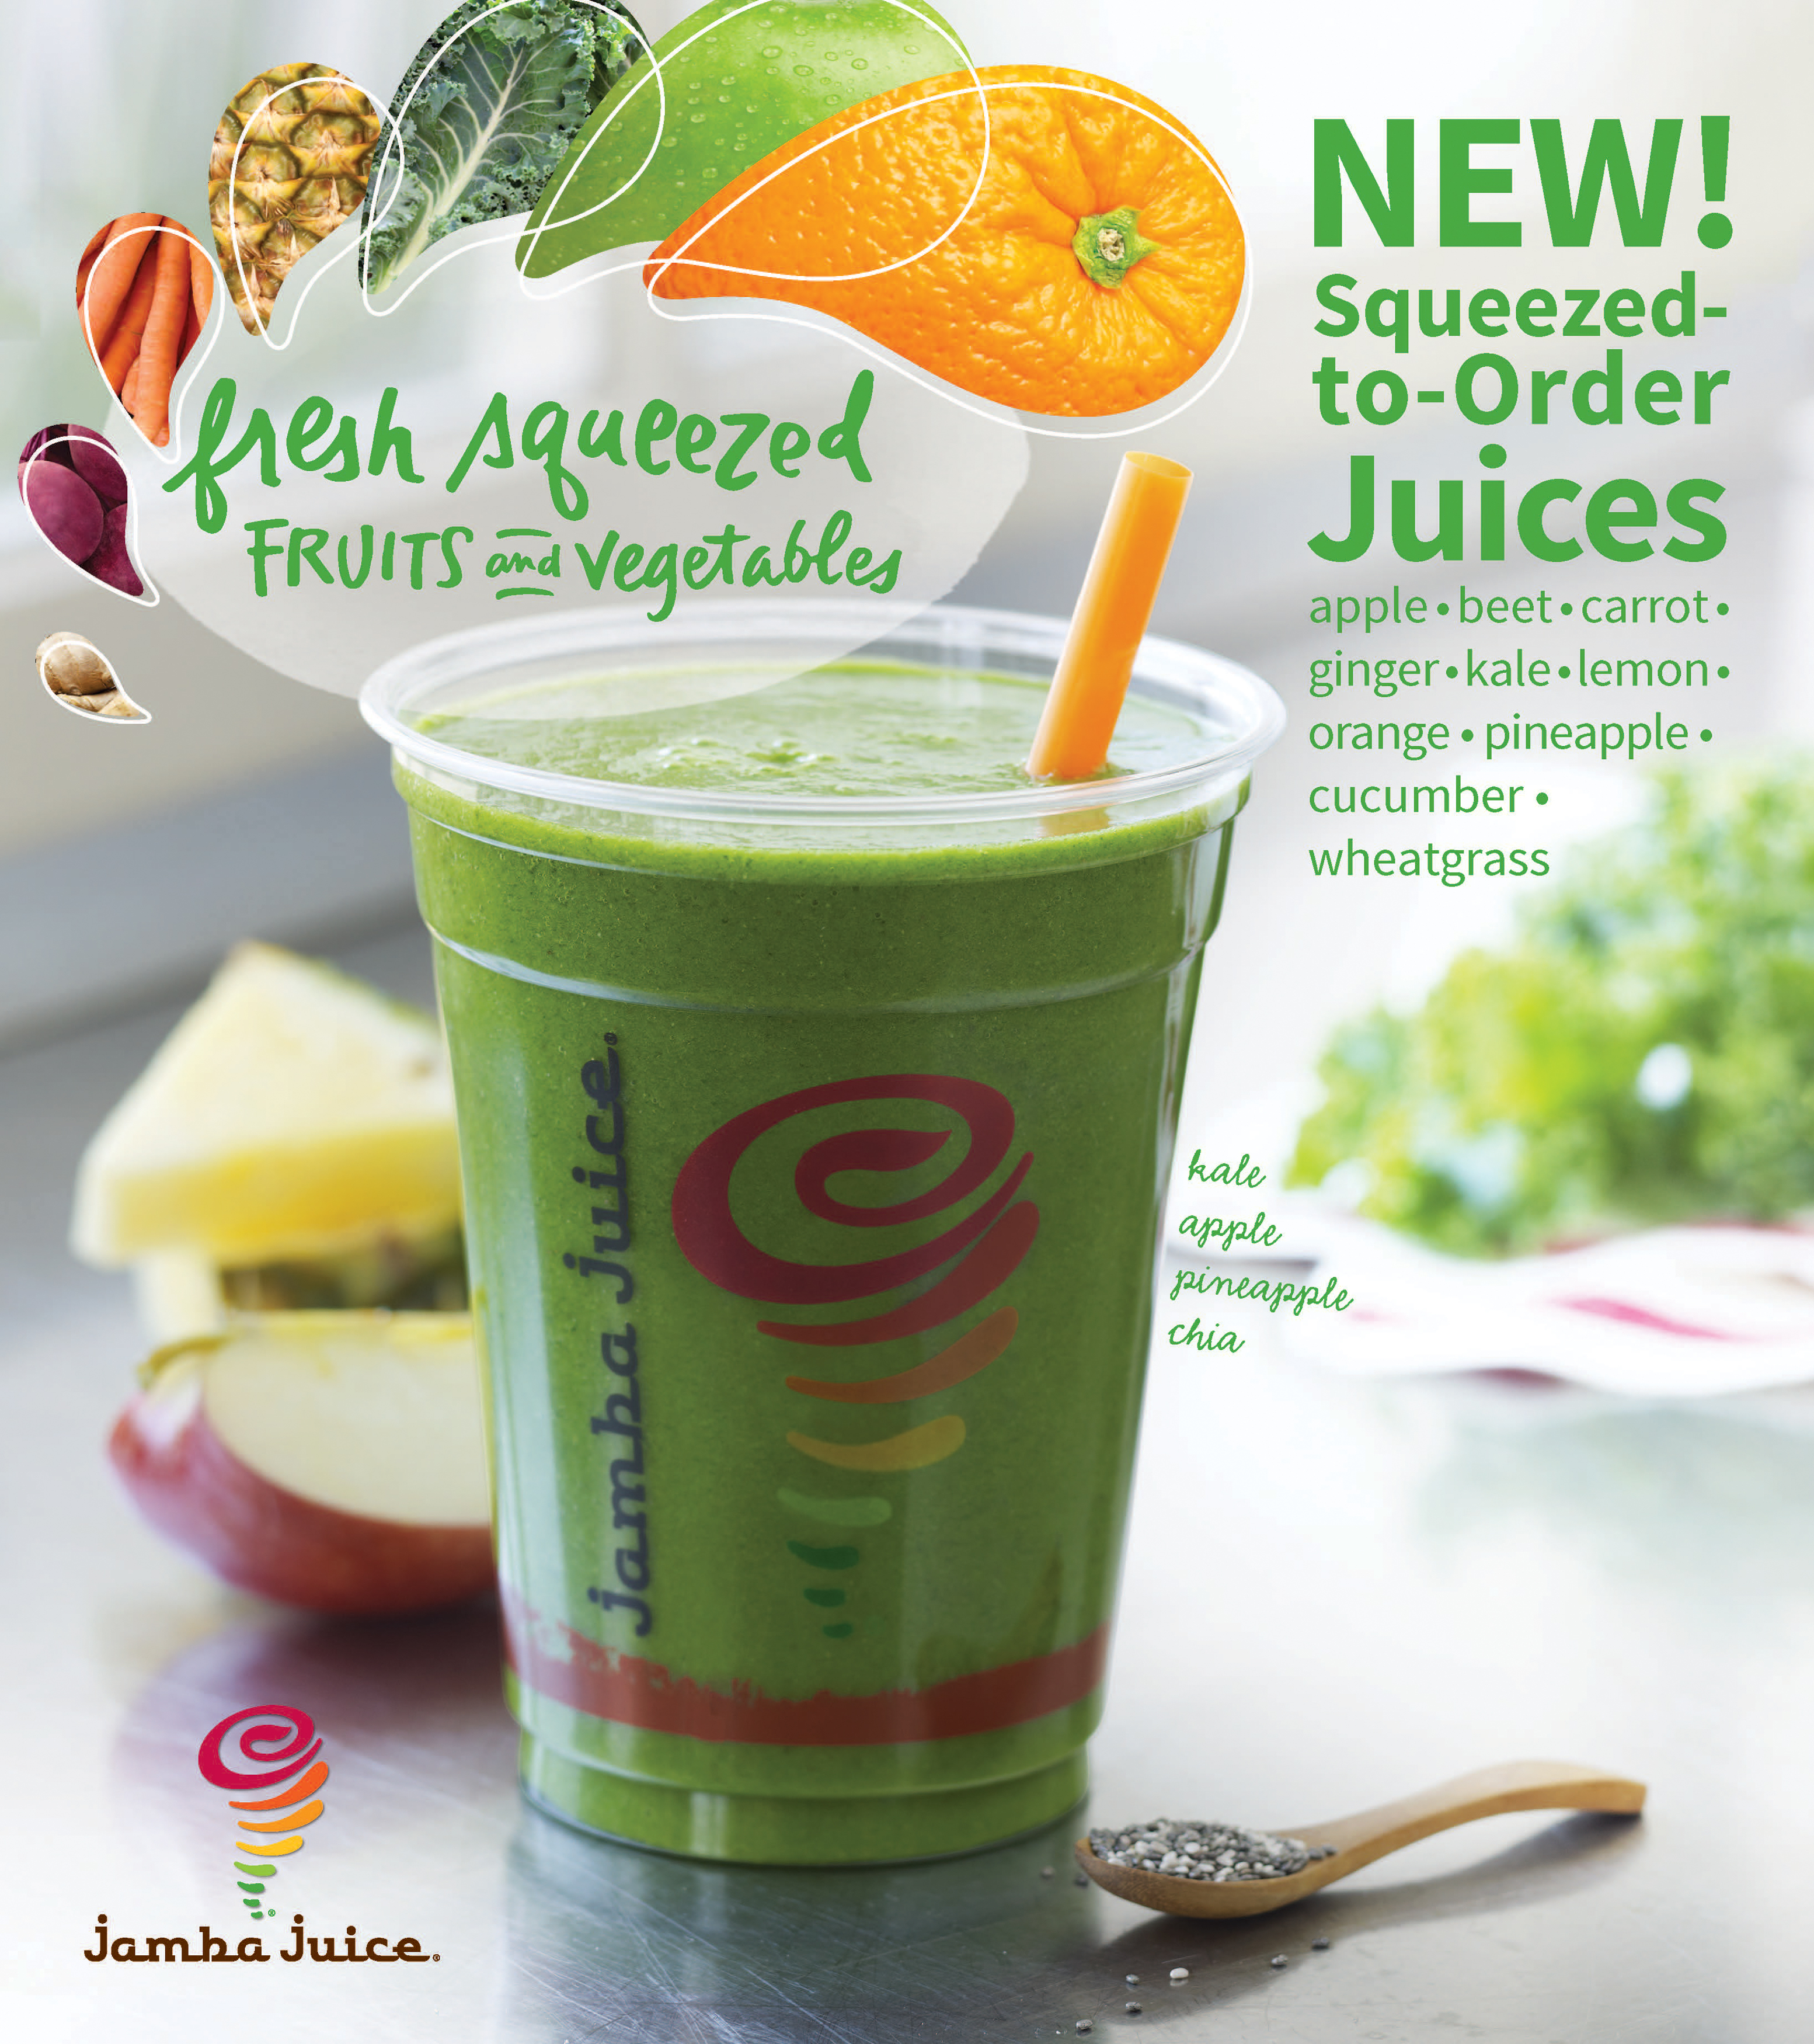 Jamba Juice Leverages Its Past To Drive Future Growth And